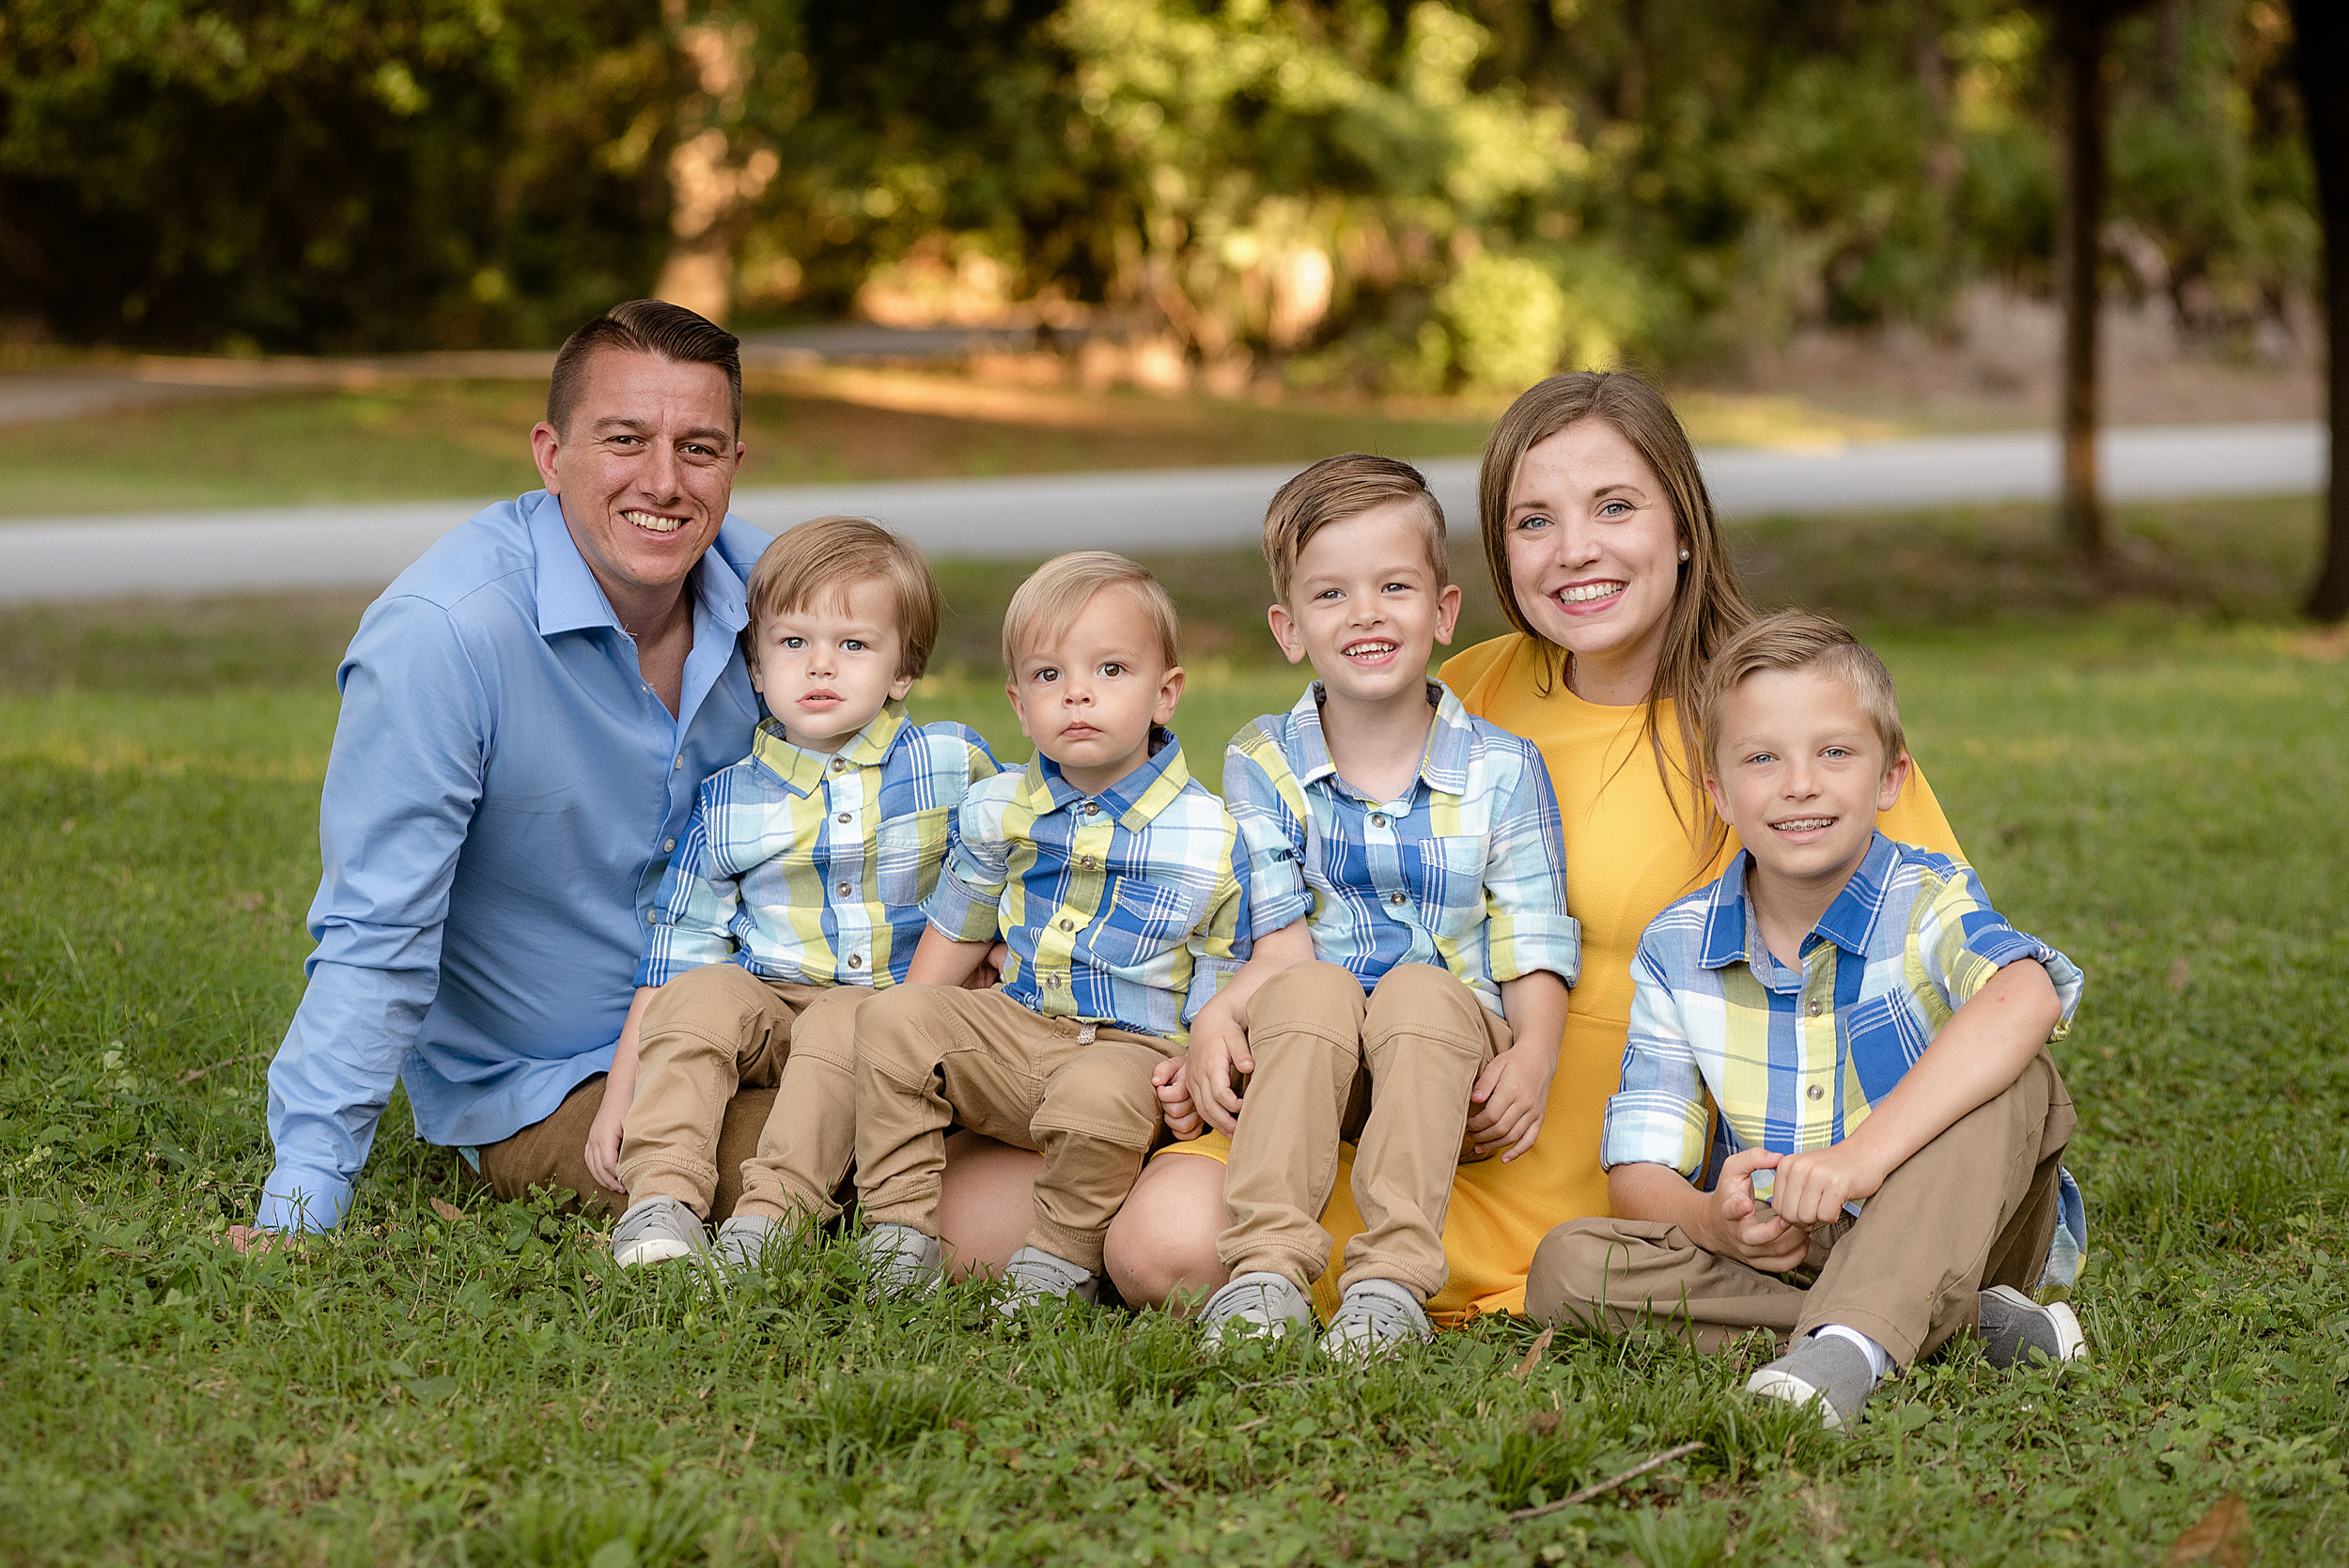 The Pursser Family - March 15, 2019 - Walsingham Park, Largo, FL; Indian Rocks Beach, FL